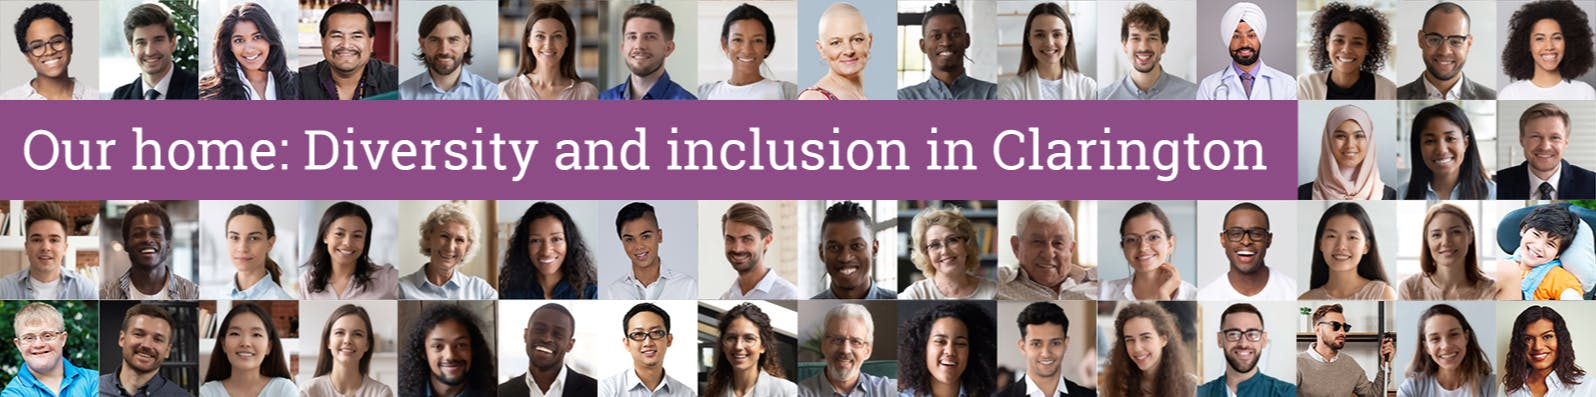 Our home: Diversity and inclusion in Clarington - A collage of many diverse smiling faces